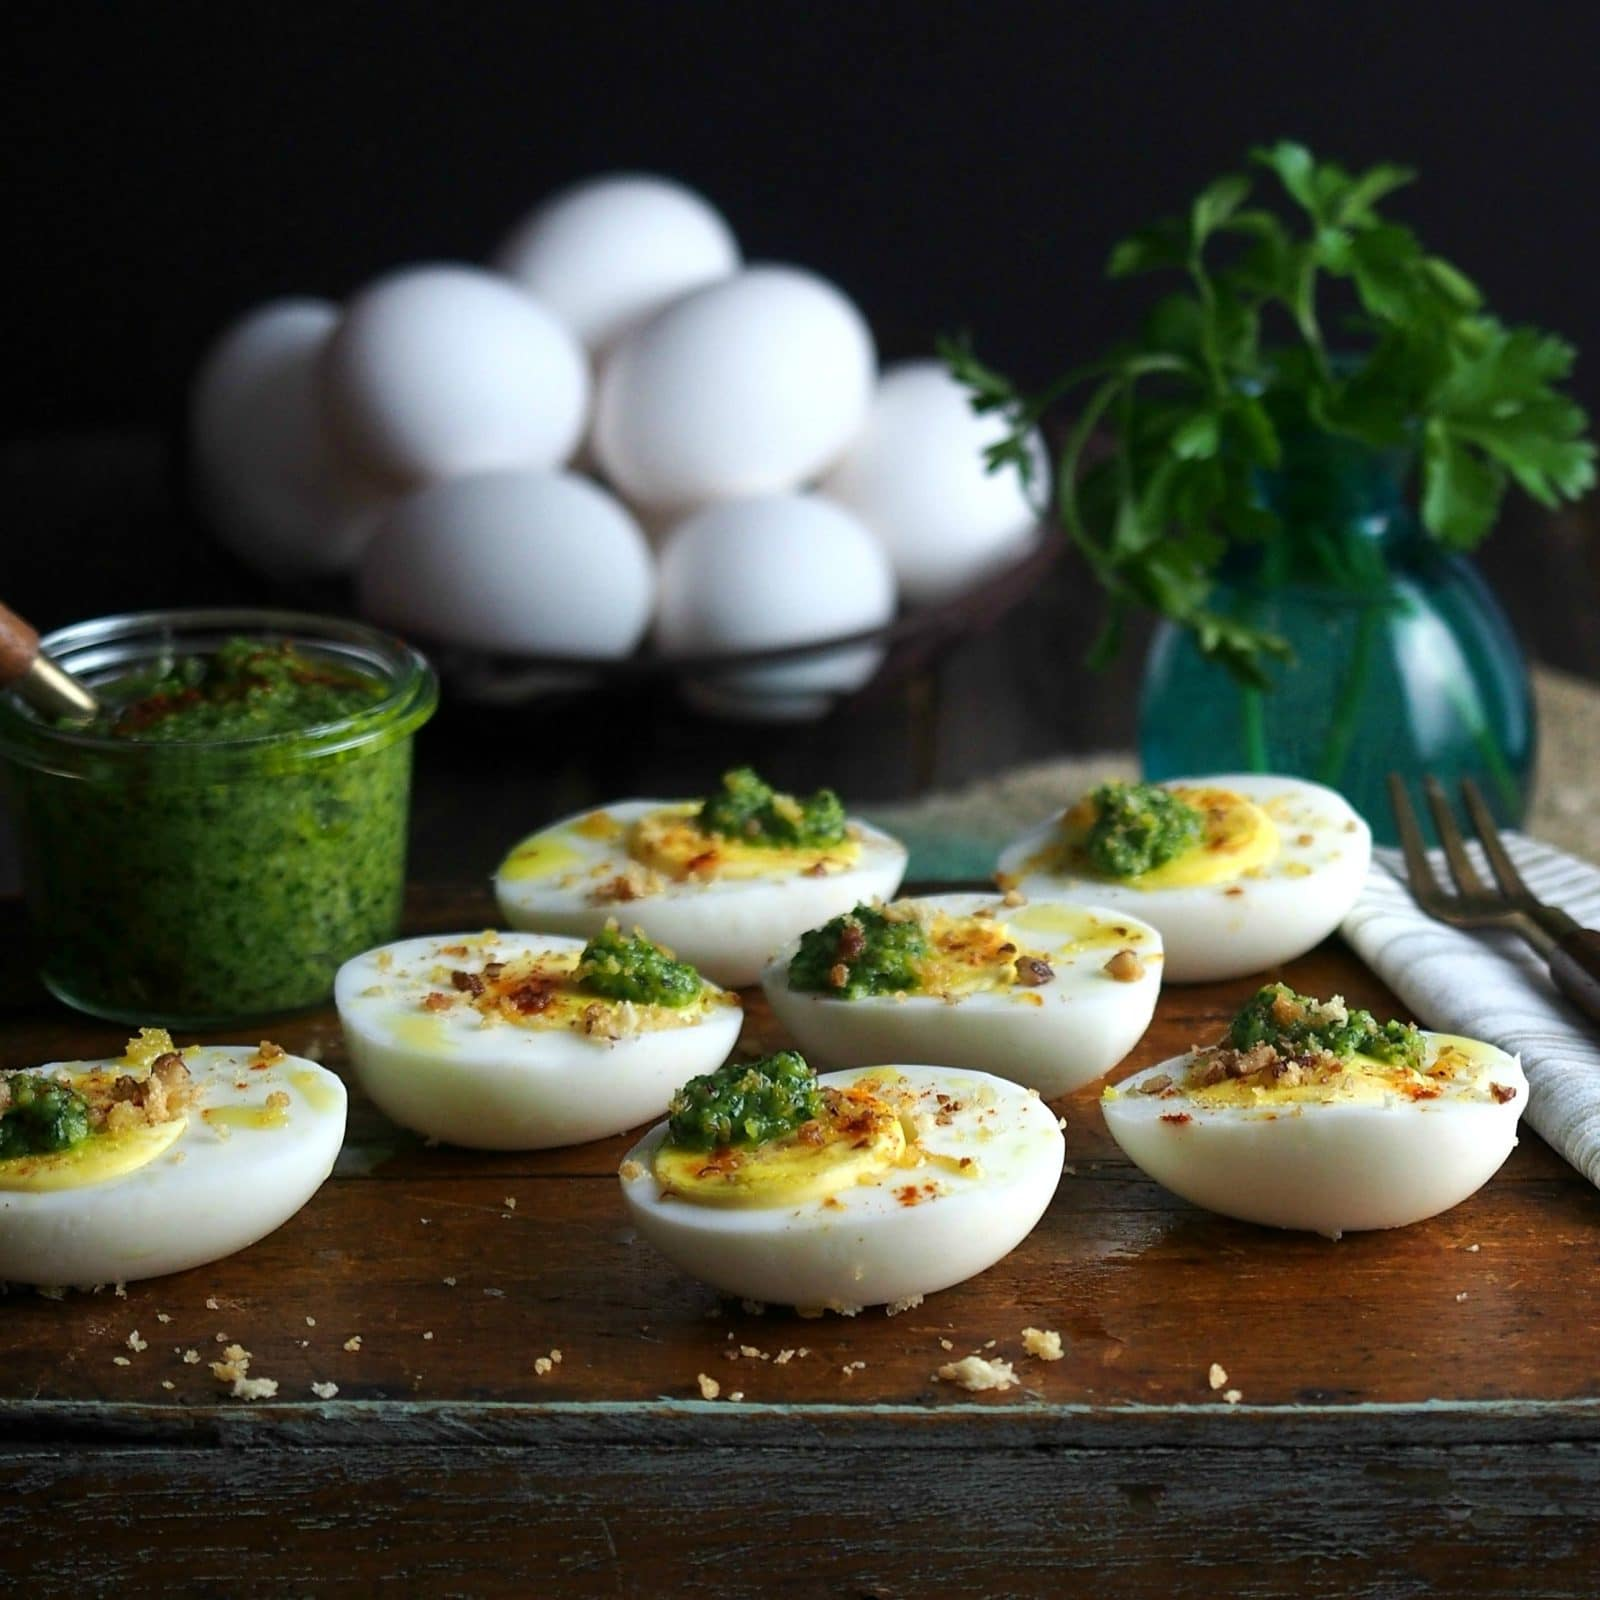 Pesto On Eggs Topped With Sugared Pecans Is A Delicious And Beautiful Way  To Serve Hard